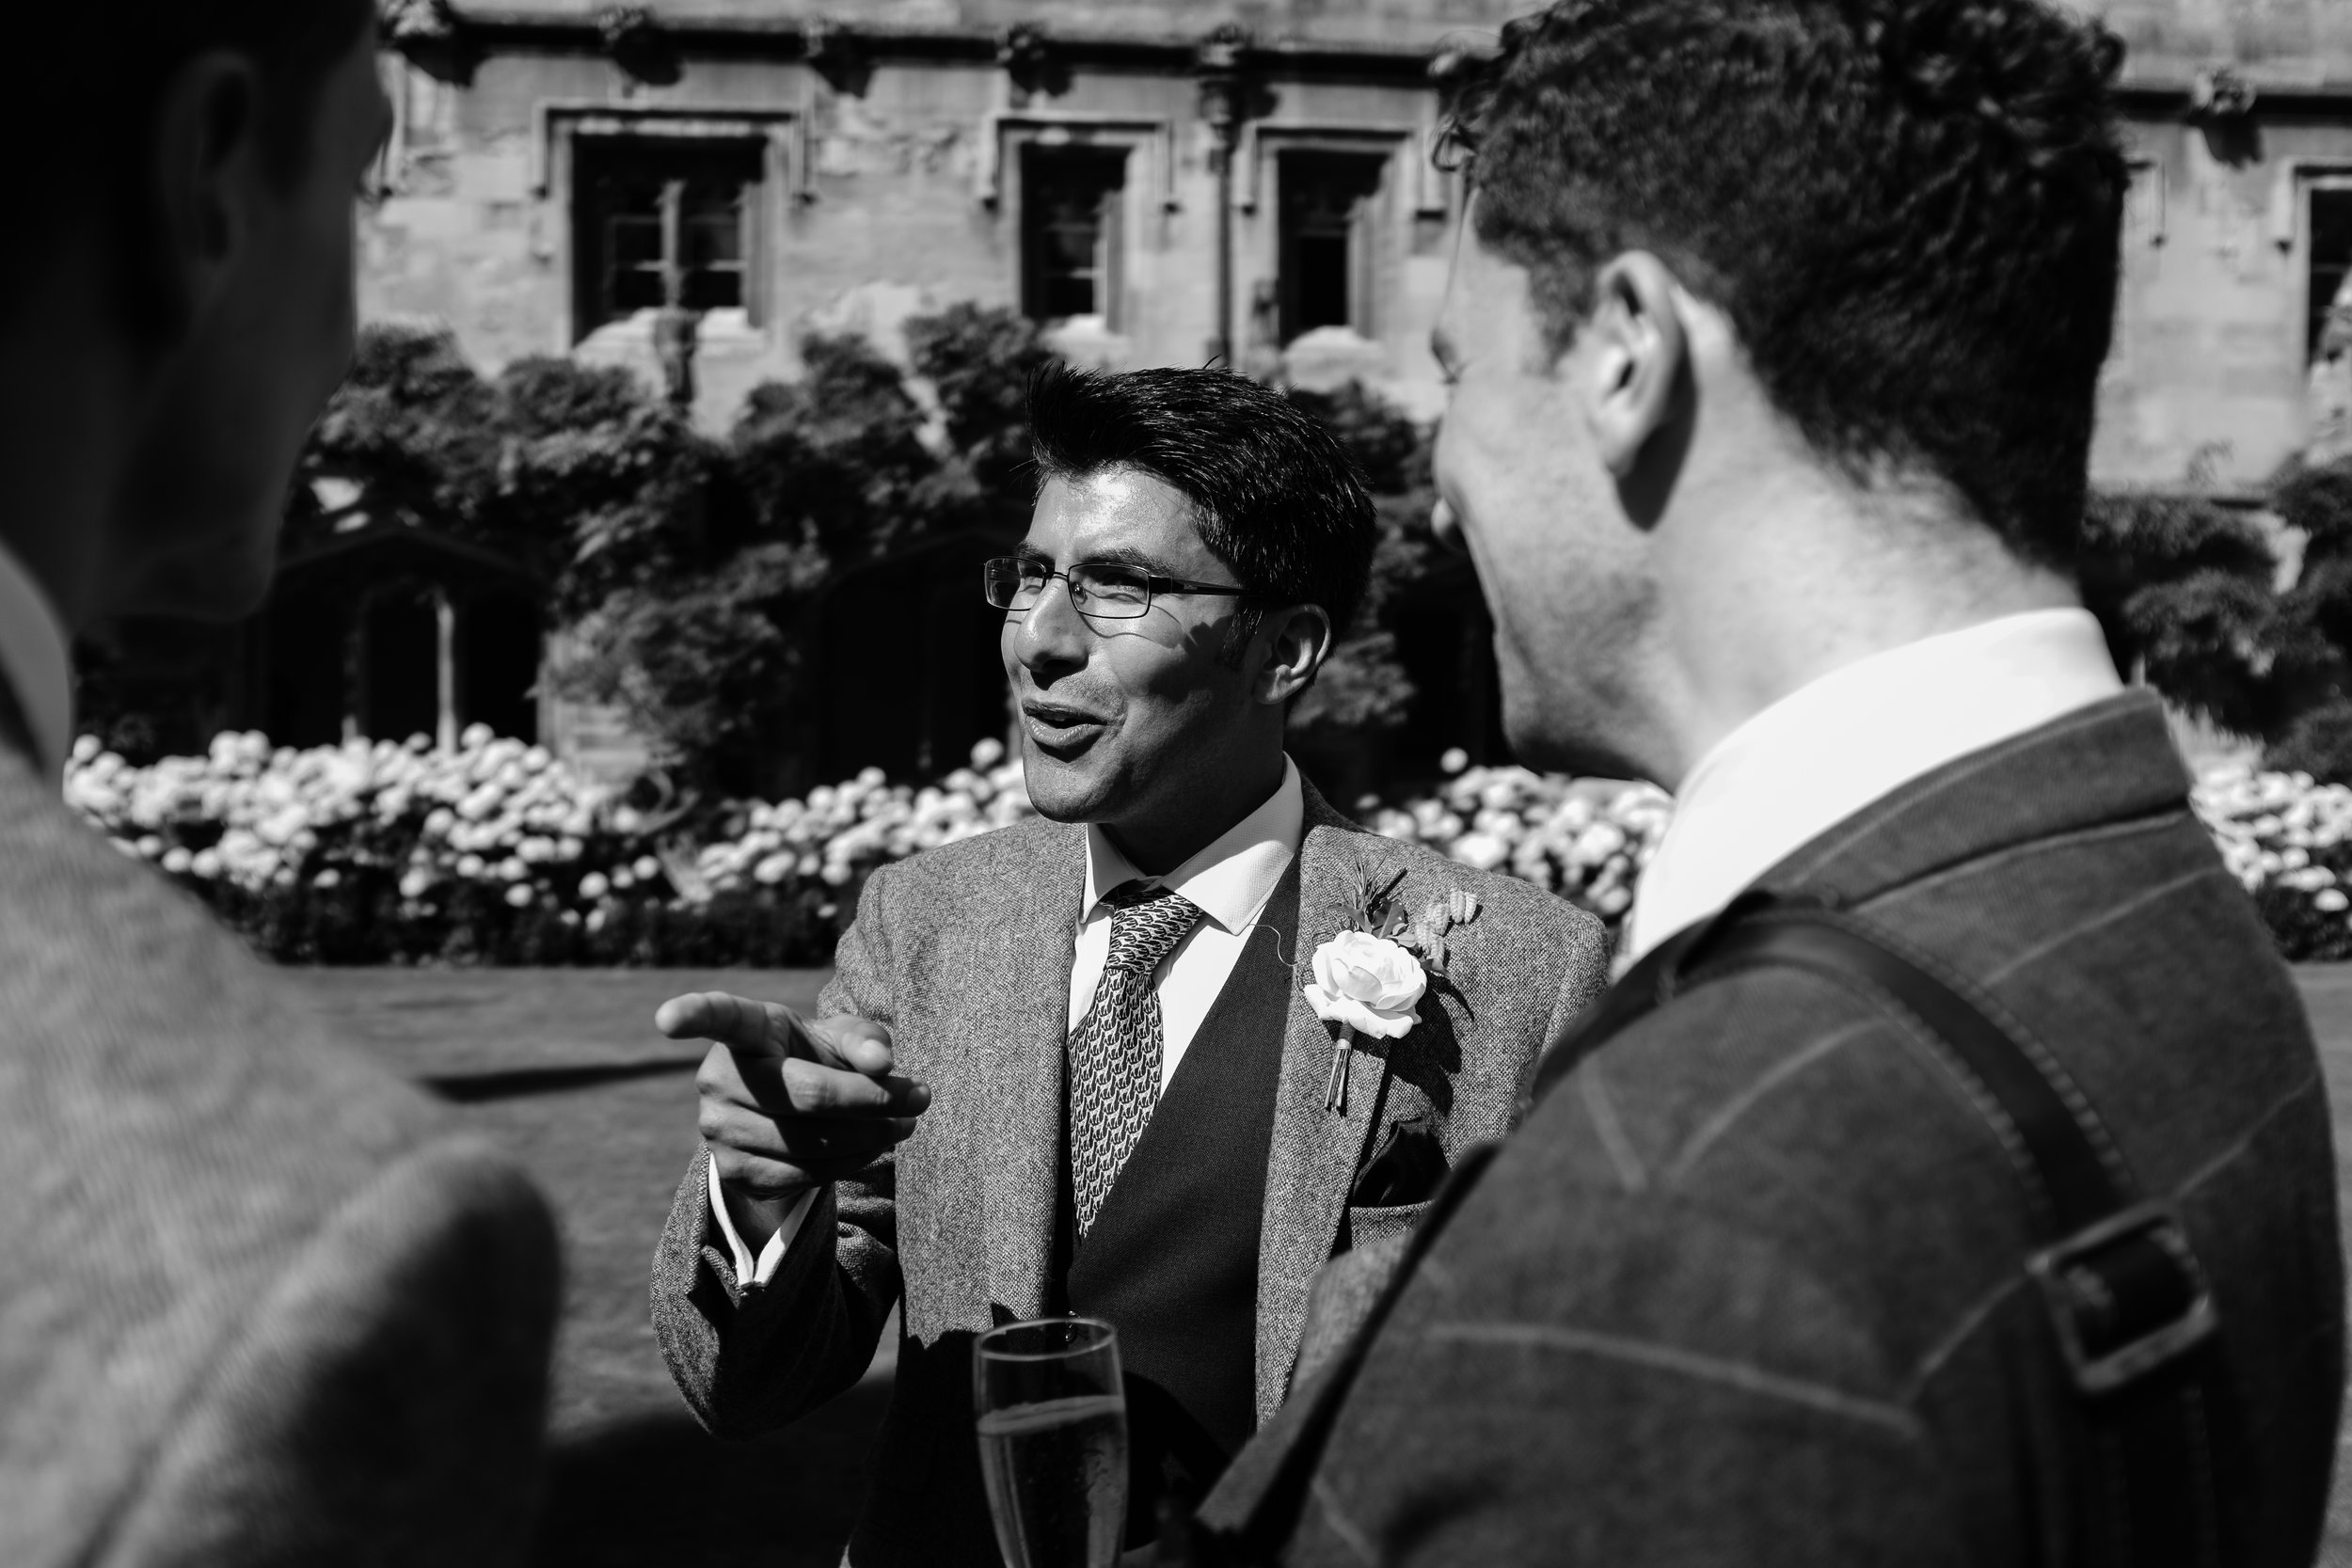 magdalen college oxford wedding photography (271).jpg